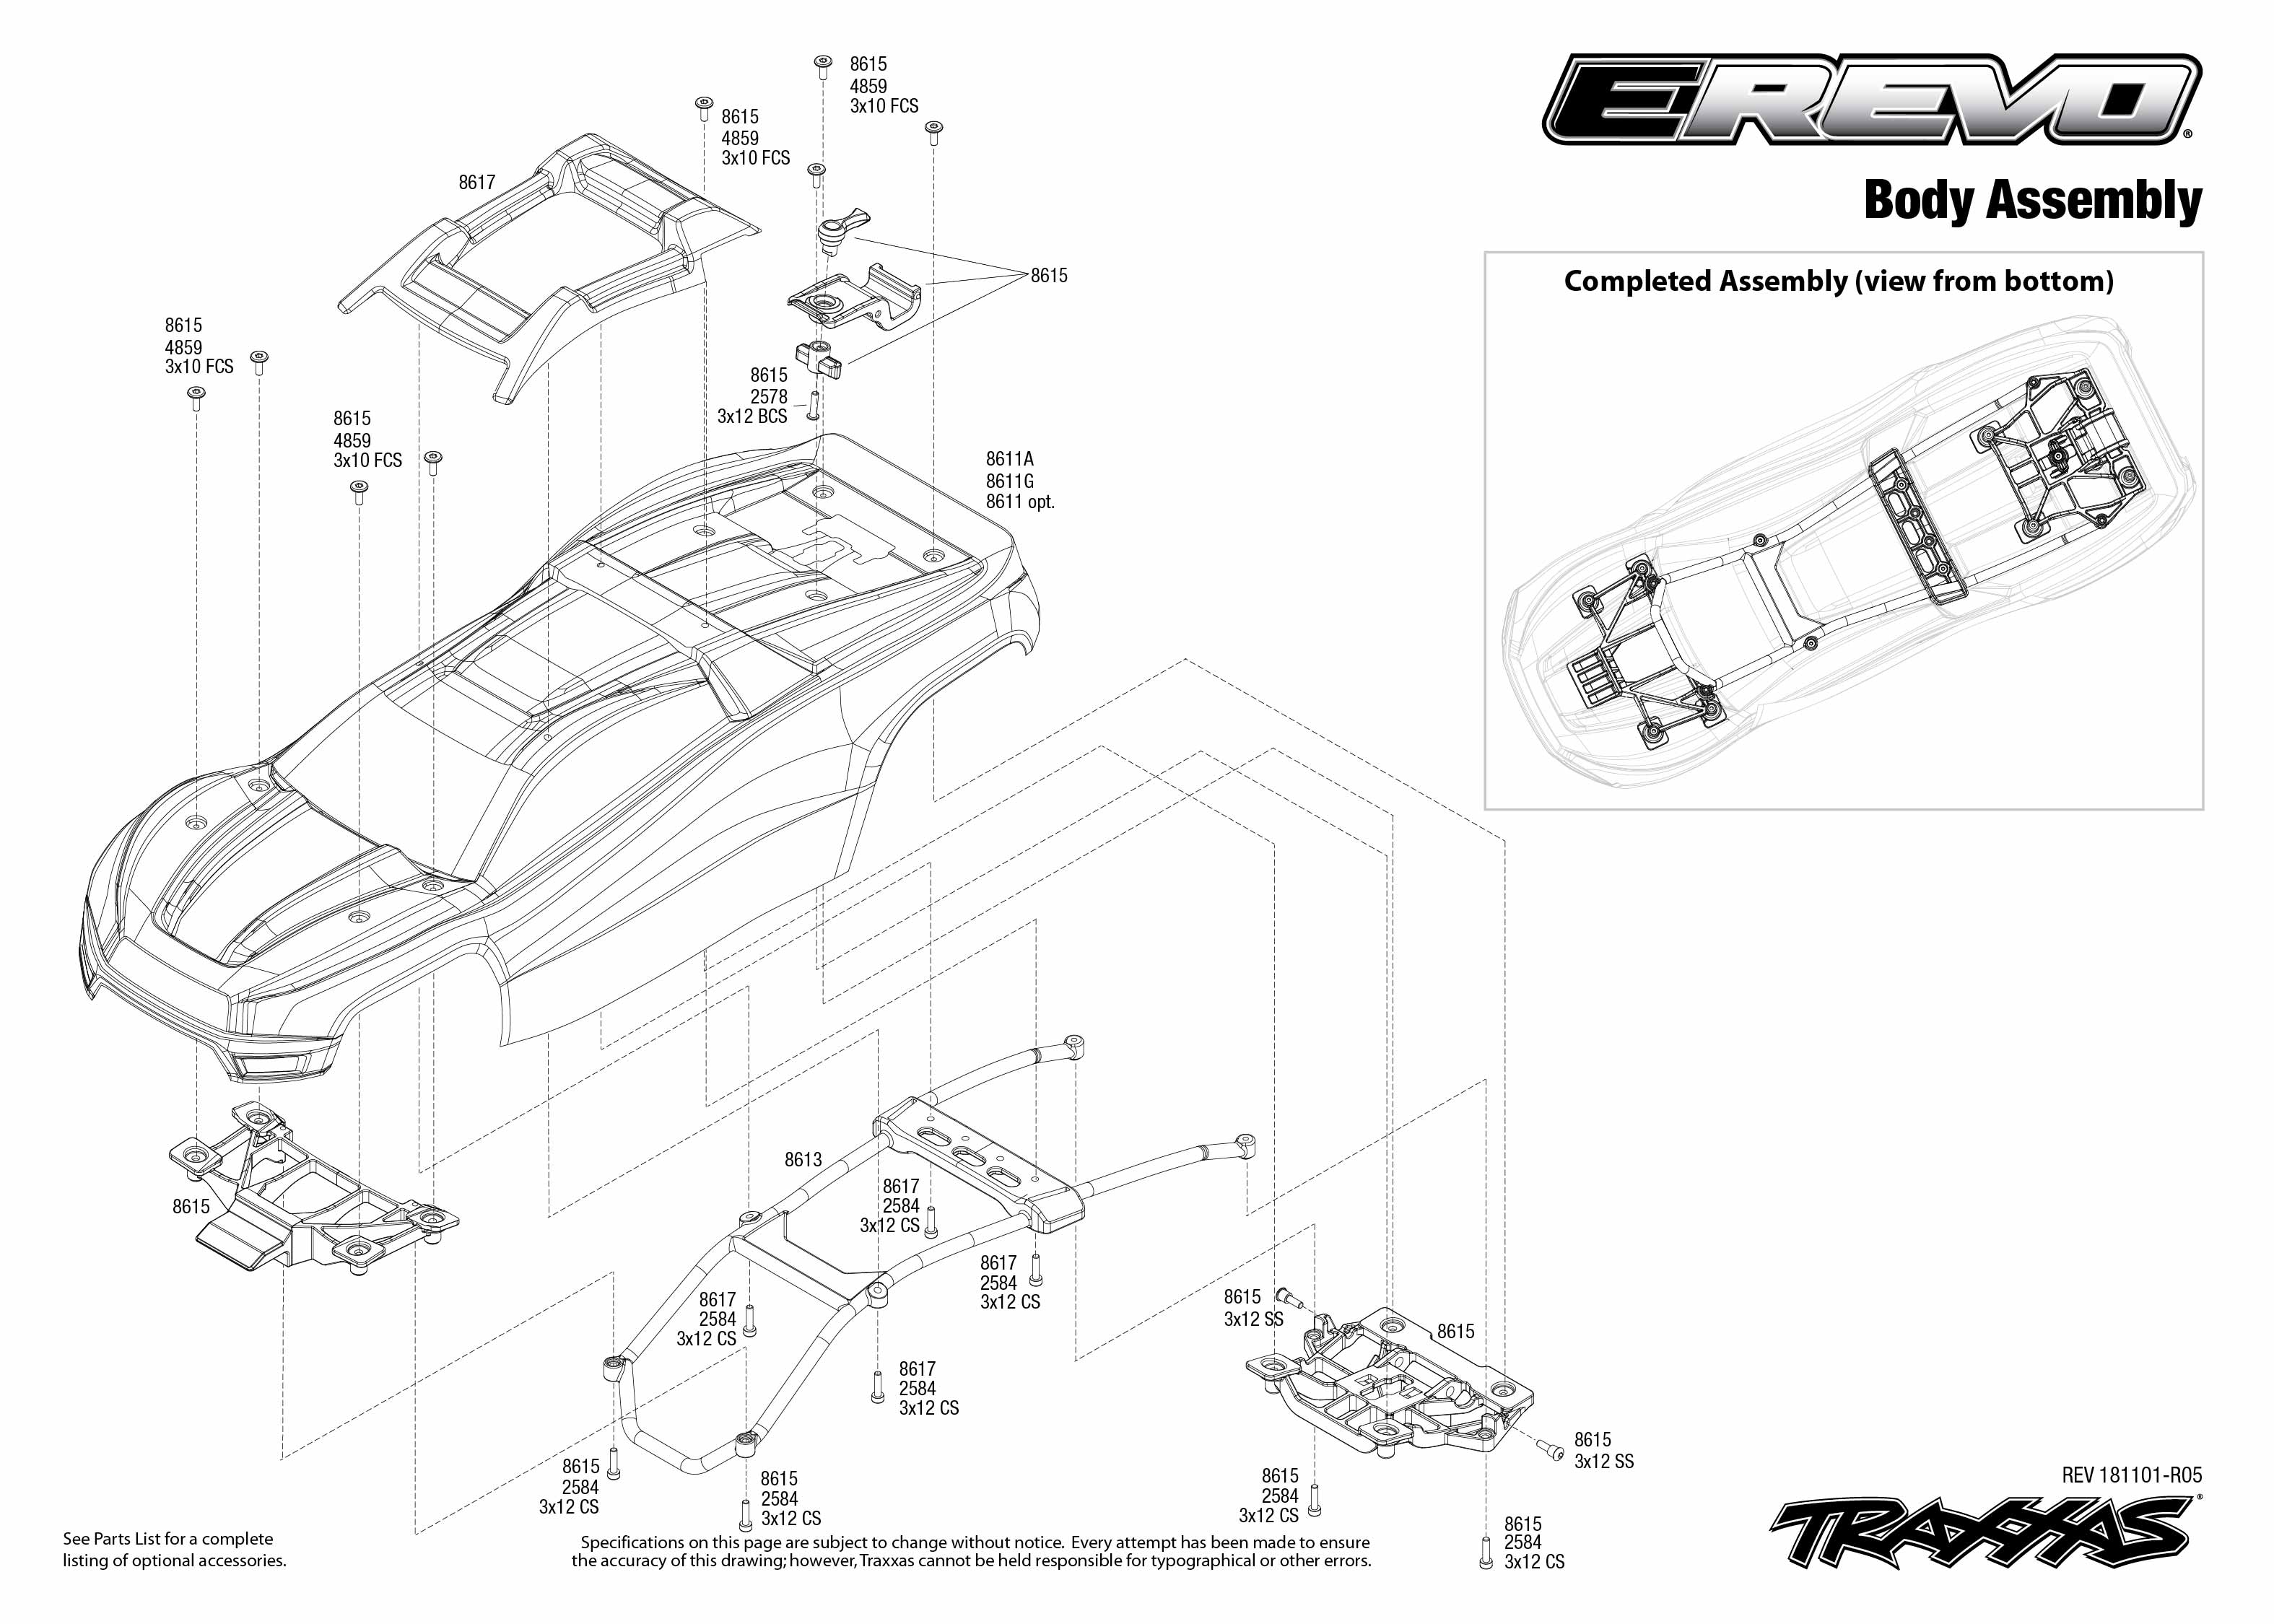 E Revo Vxl Brushless 86086 4 Body Assembly Exploded View Traxxas Schematic Use Magnifier Buttons To Zoom Click Part Numbers For Details Or Add Cart